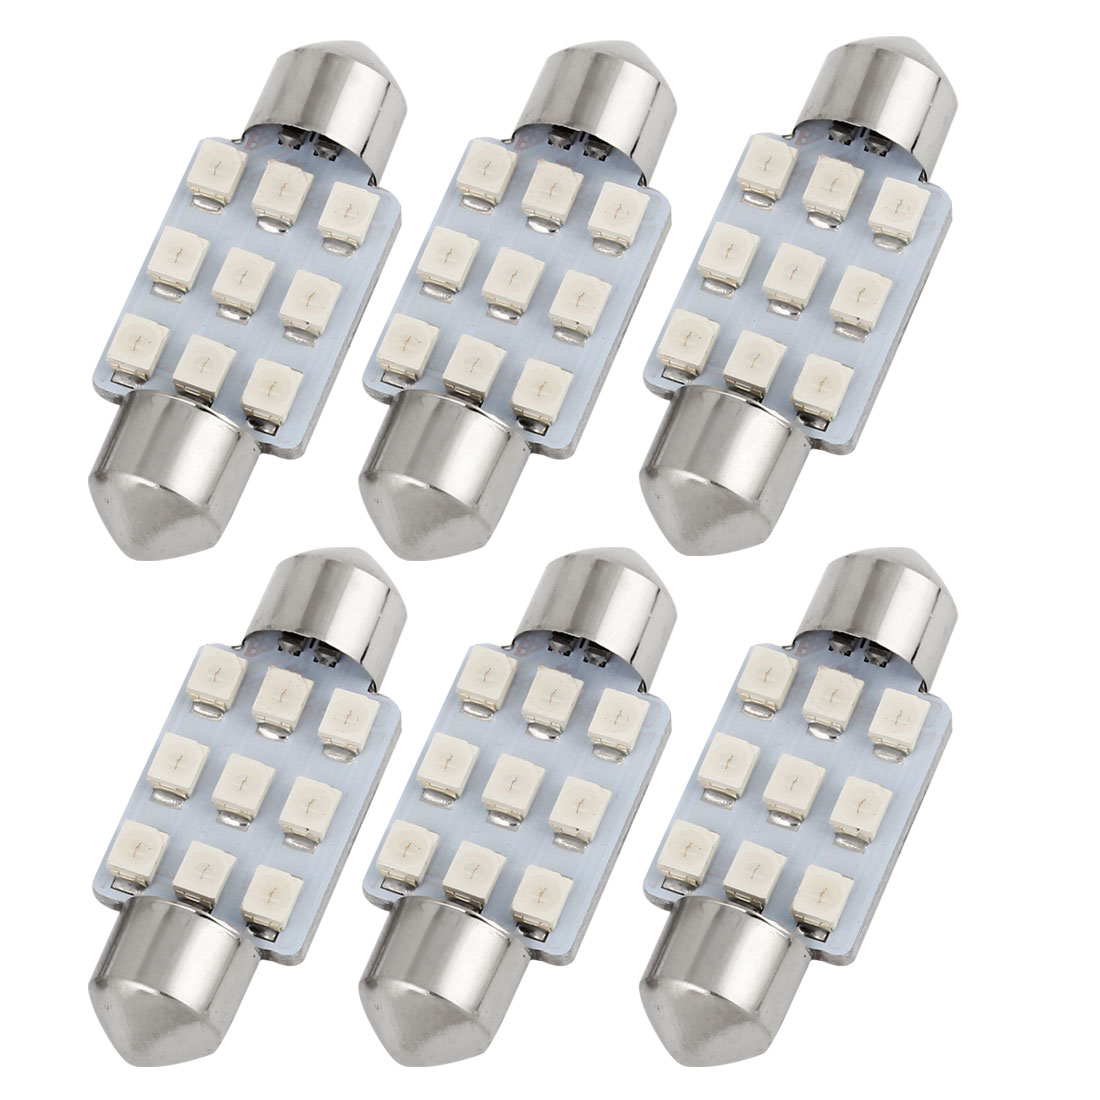 "6PCS 36mm 1.5"" 1210 SMD 9LED Green Festoon Dome Light Lamp DC 12V 6418 Internal"